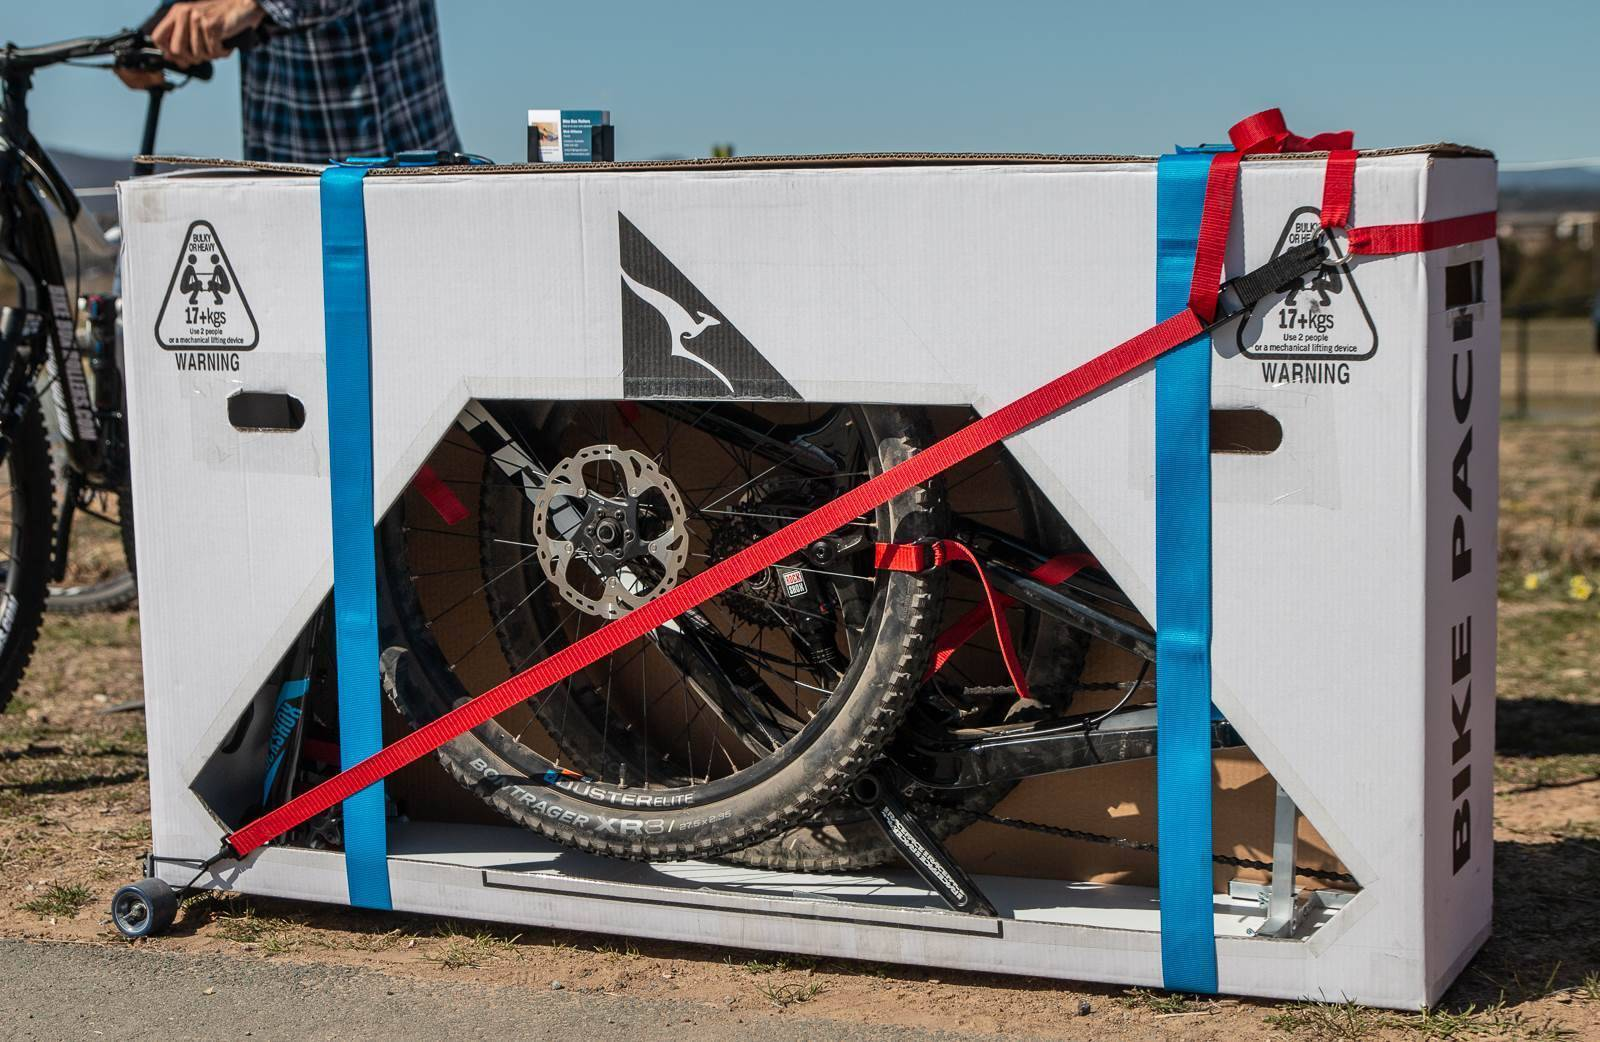 Air travel made easy with Bike Box Rollers